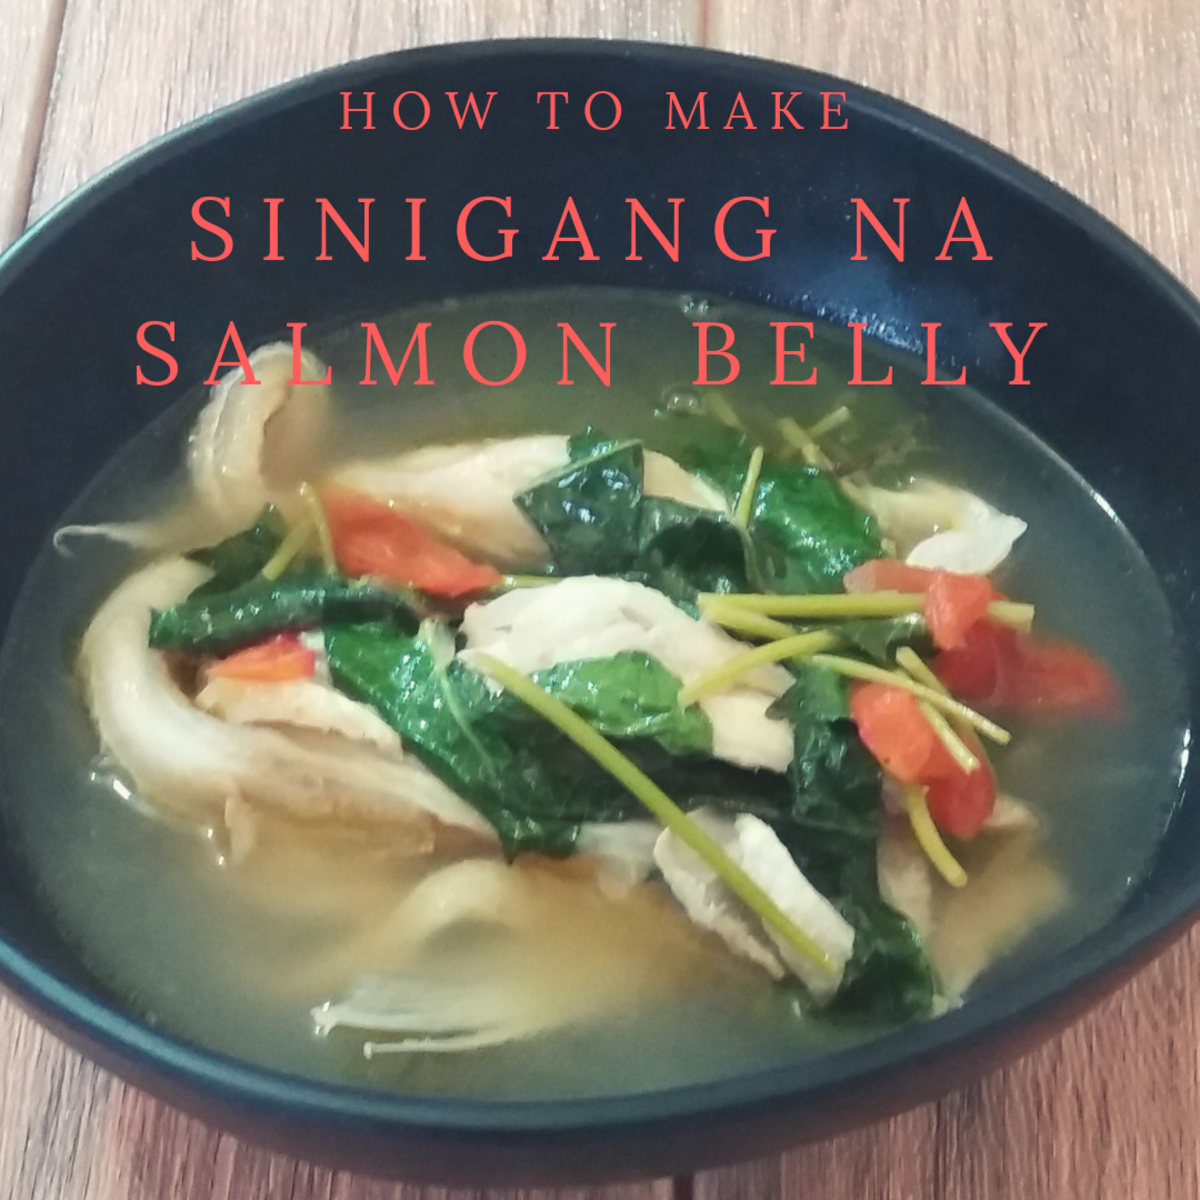 Learn how to make sinigang na salmon belly, a Filipino-inspired dish.